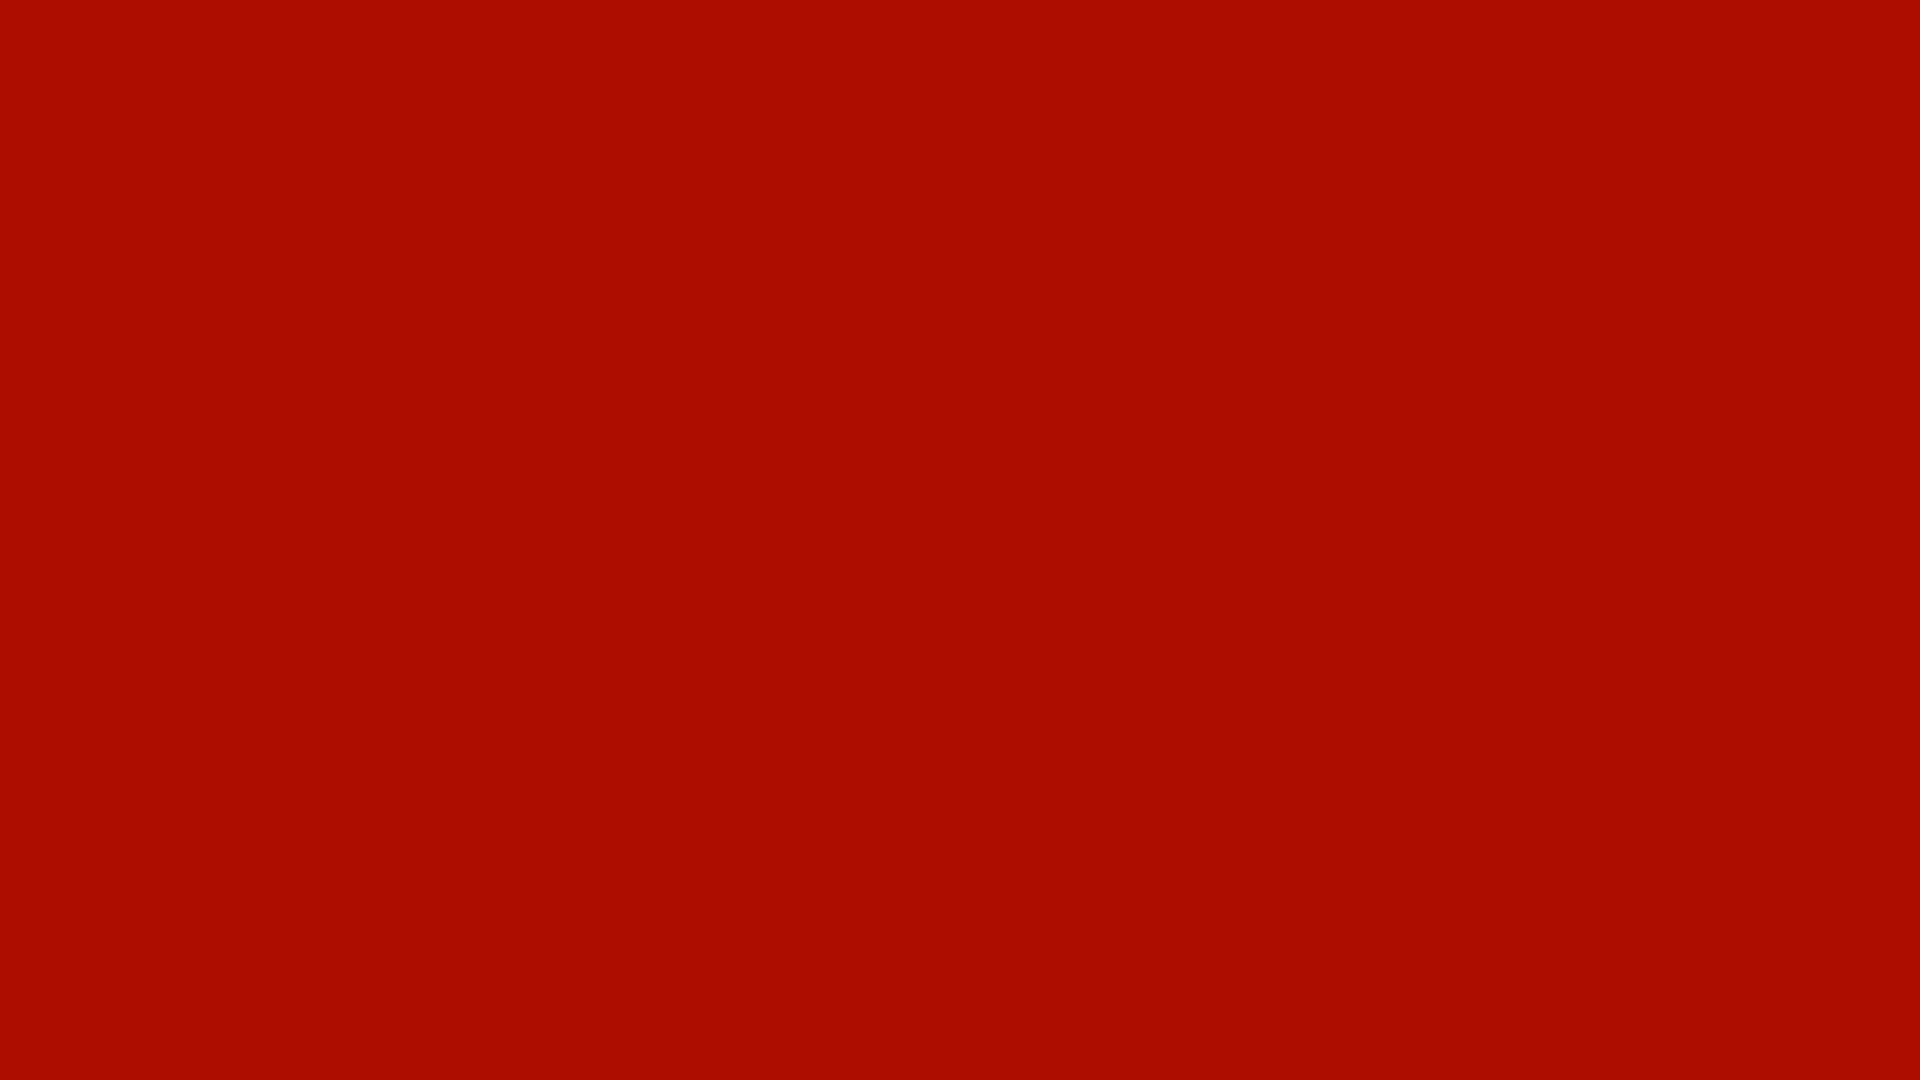 1920x1080 Mordant Red 19 Solid Color Background